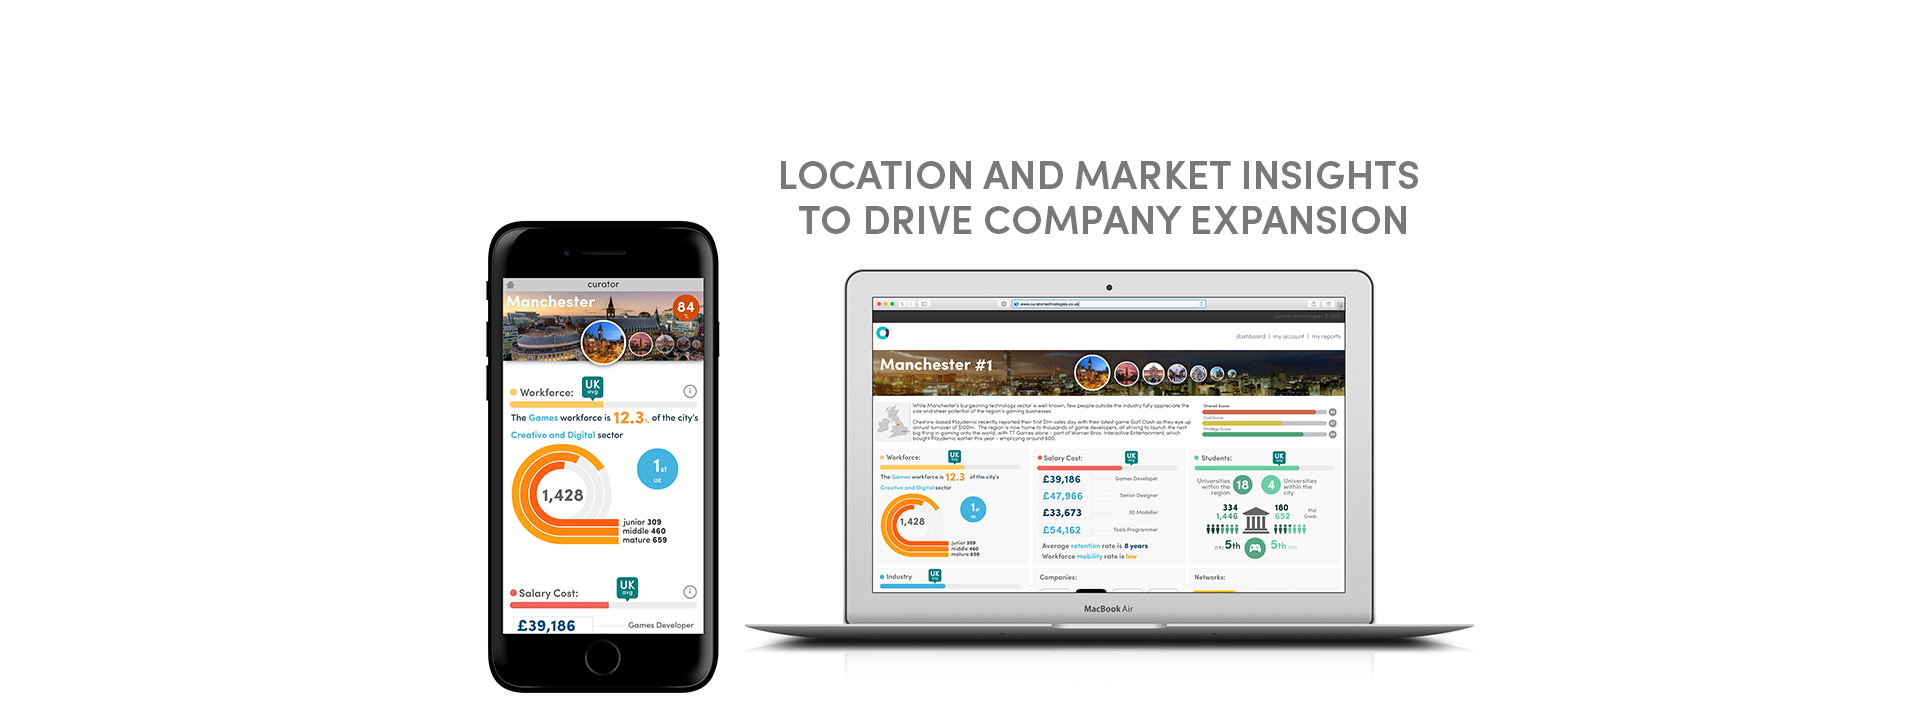 LOCATION AND MARKET INSIGHTS TO DRIVE COMPANY EXPANSION